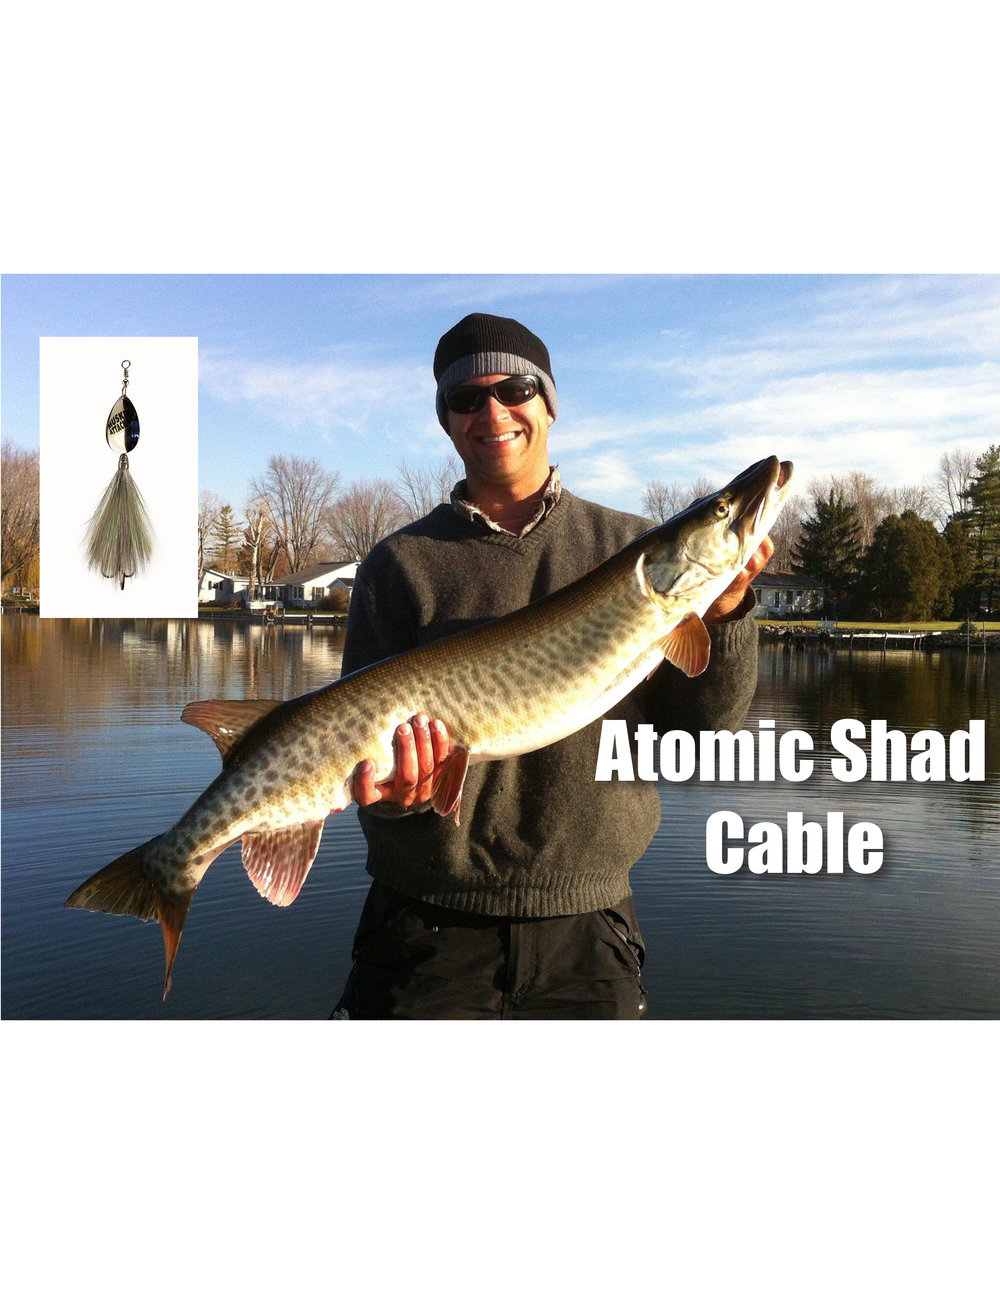 atomic shad cable.jpg